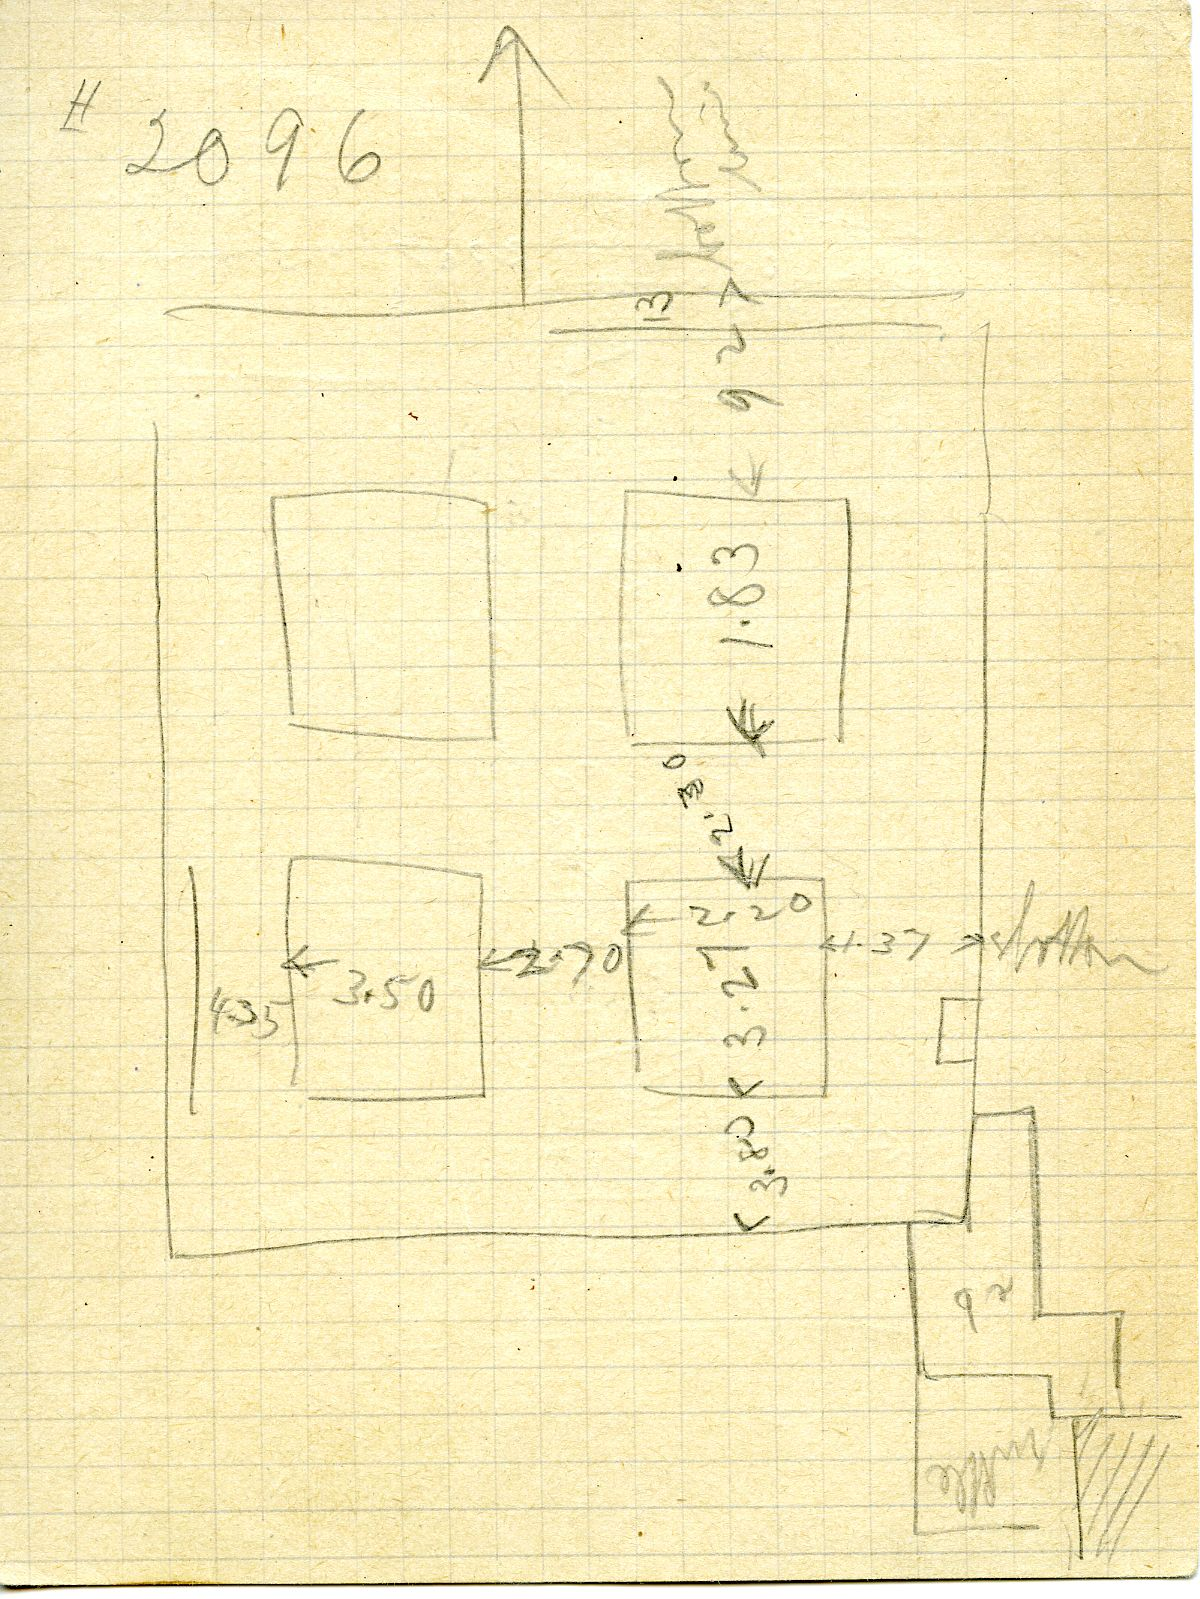 Maps and plans: G 3096, Sketch Plan